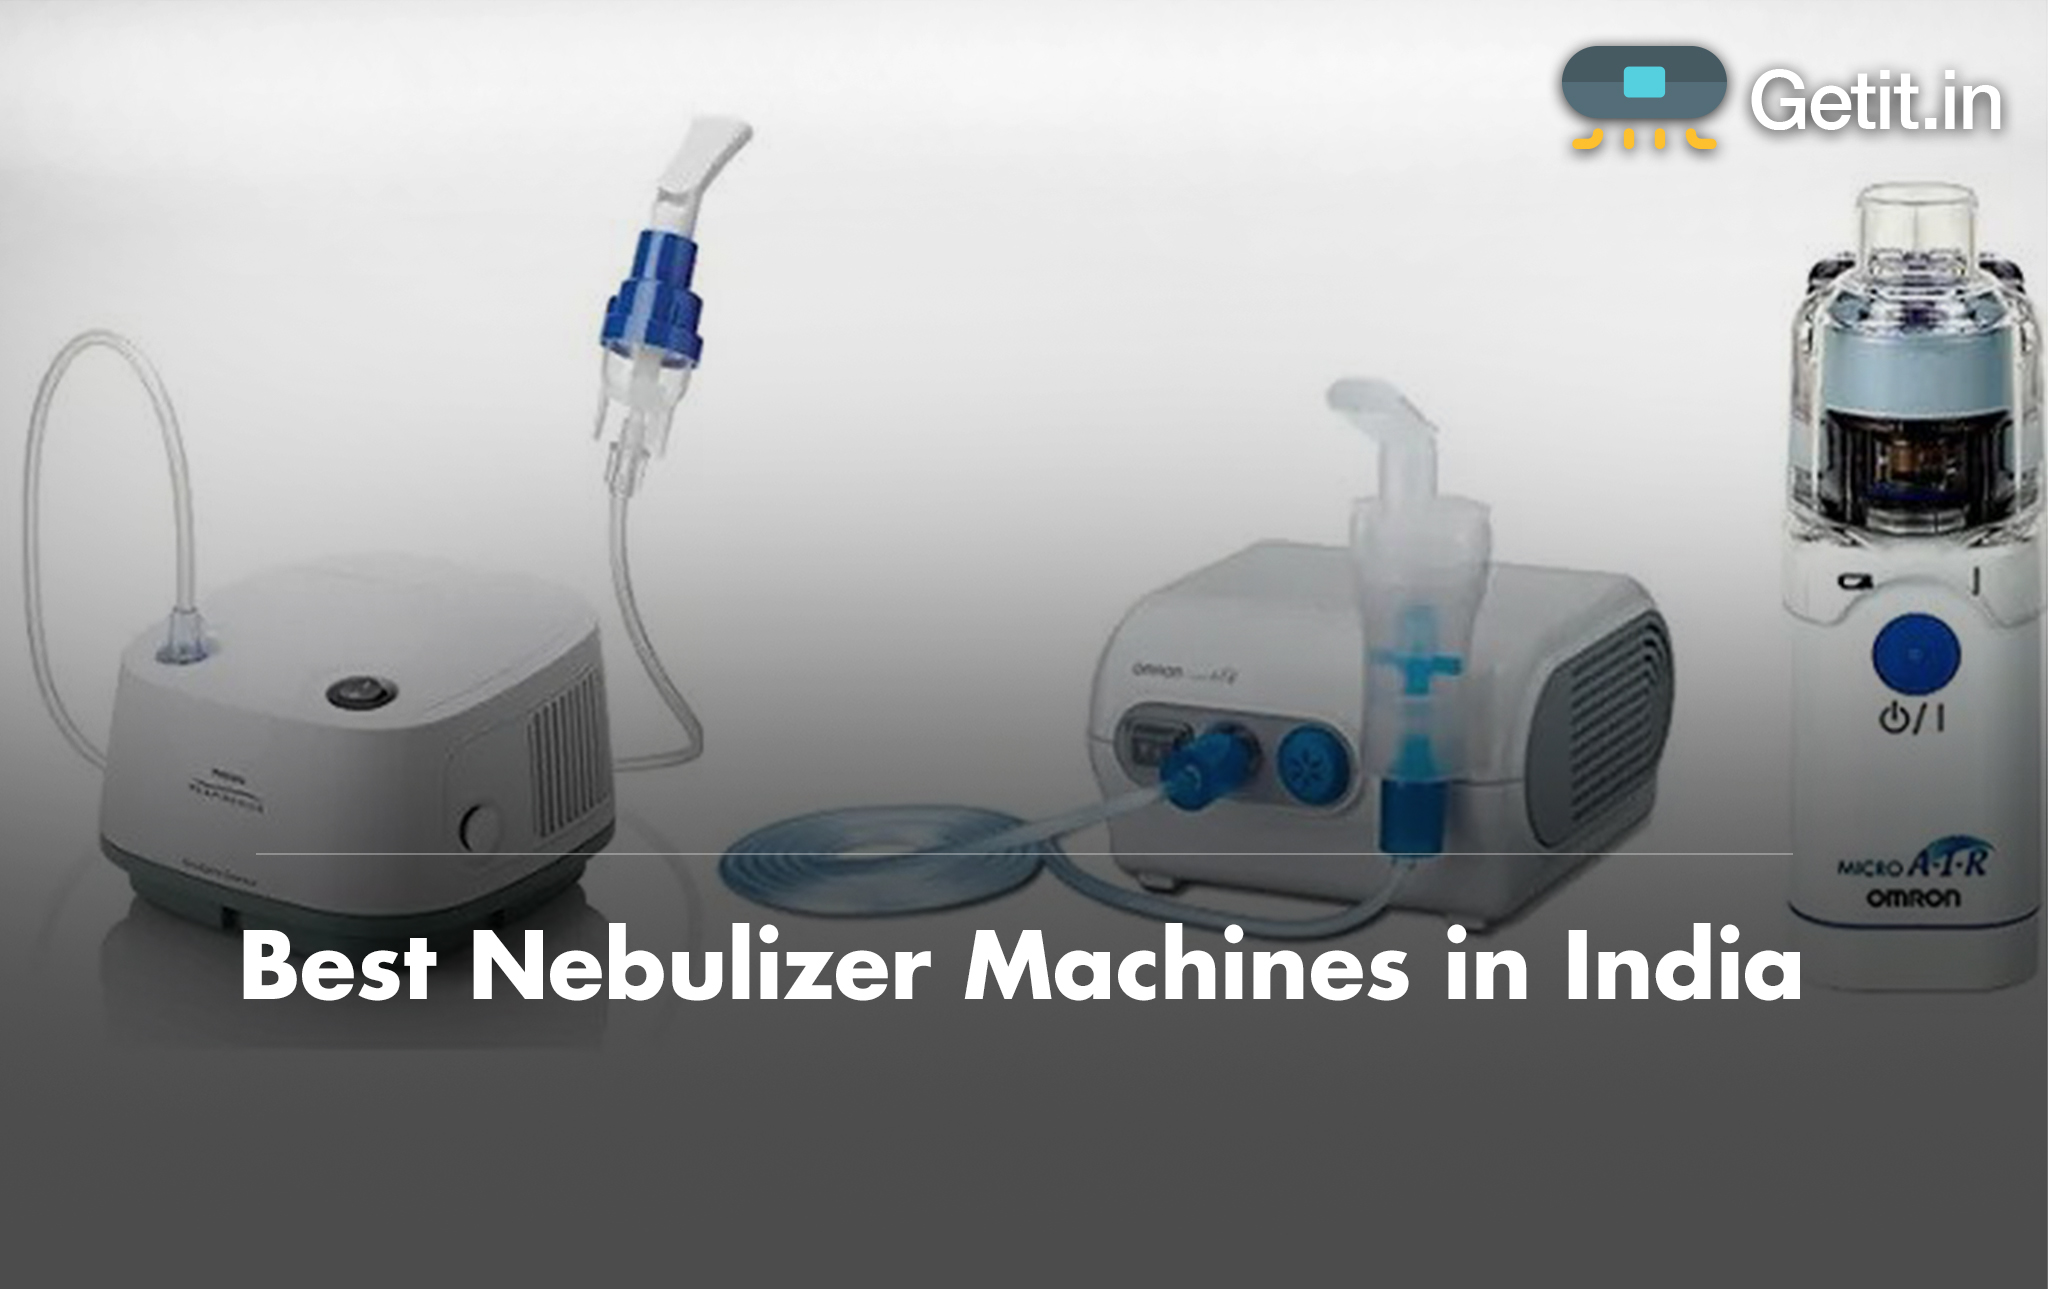 Best Nebulizer Machines in India